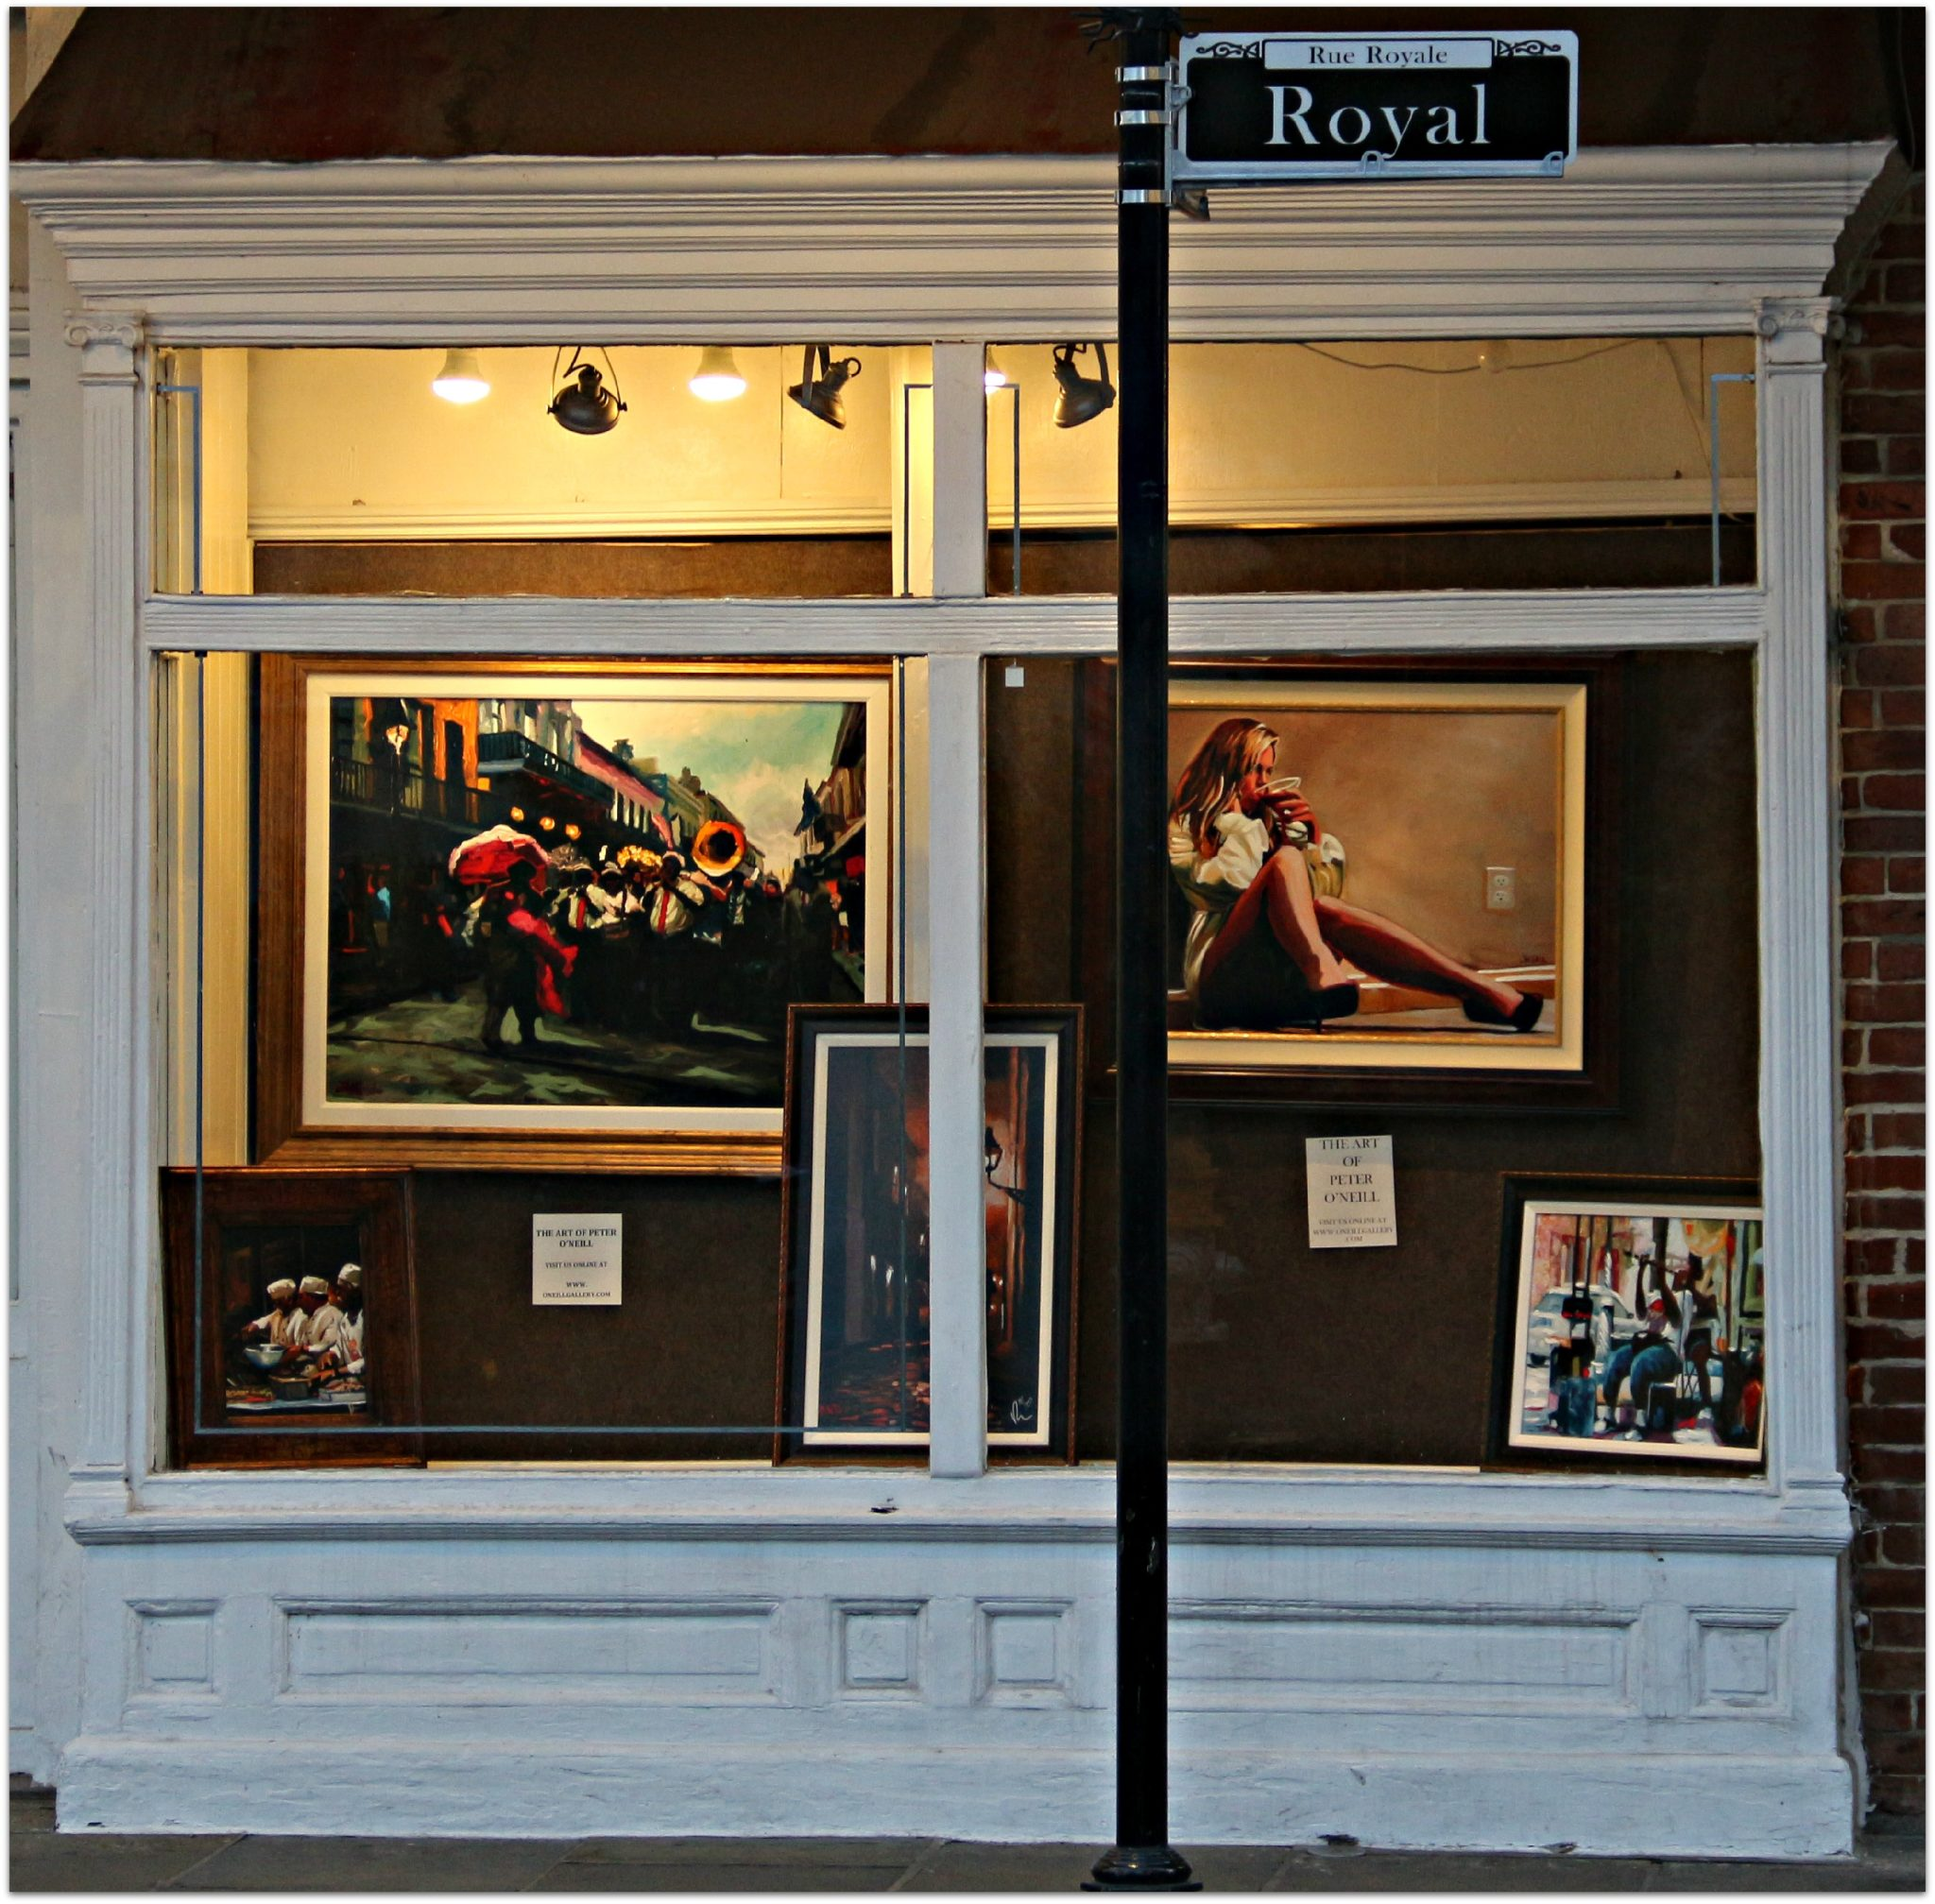 Royal Street Art Gallery